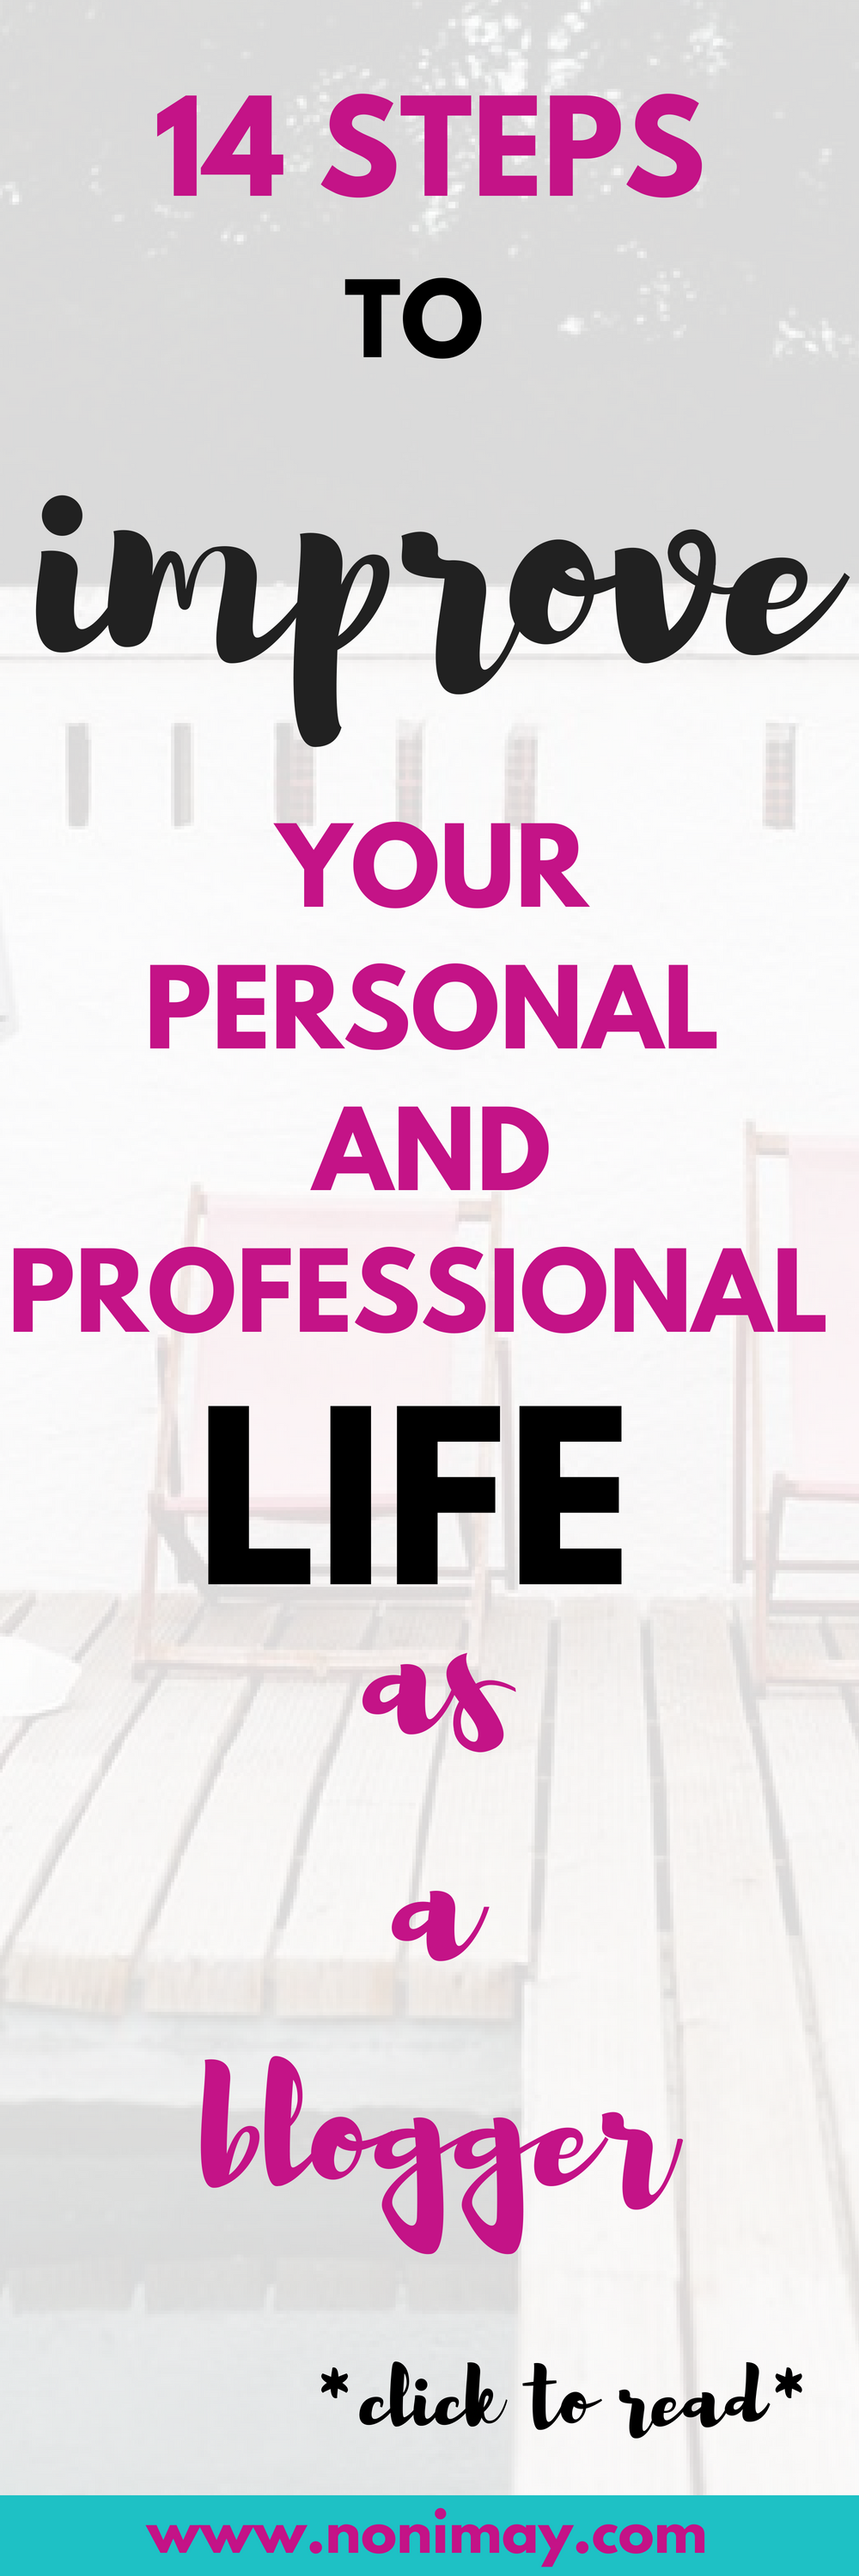 14 Steps to improve your personal and professional life as a blogger